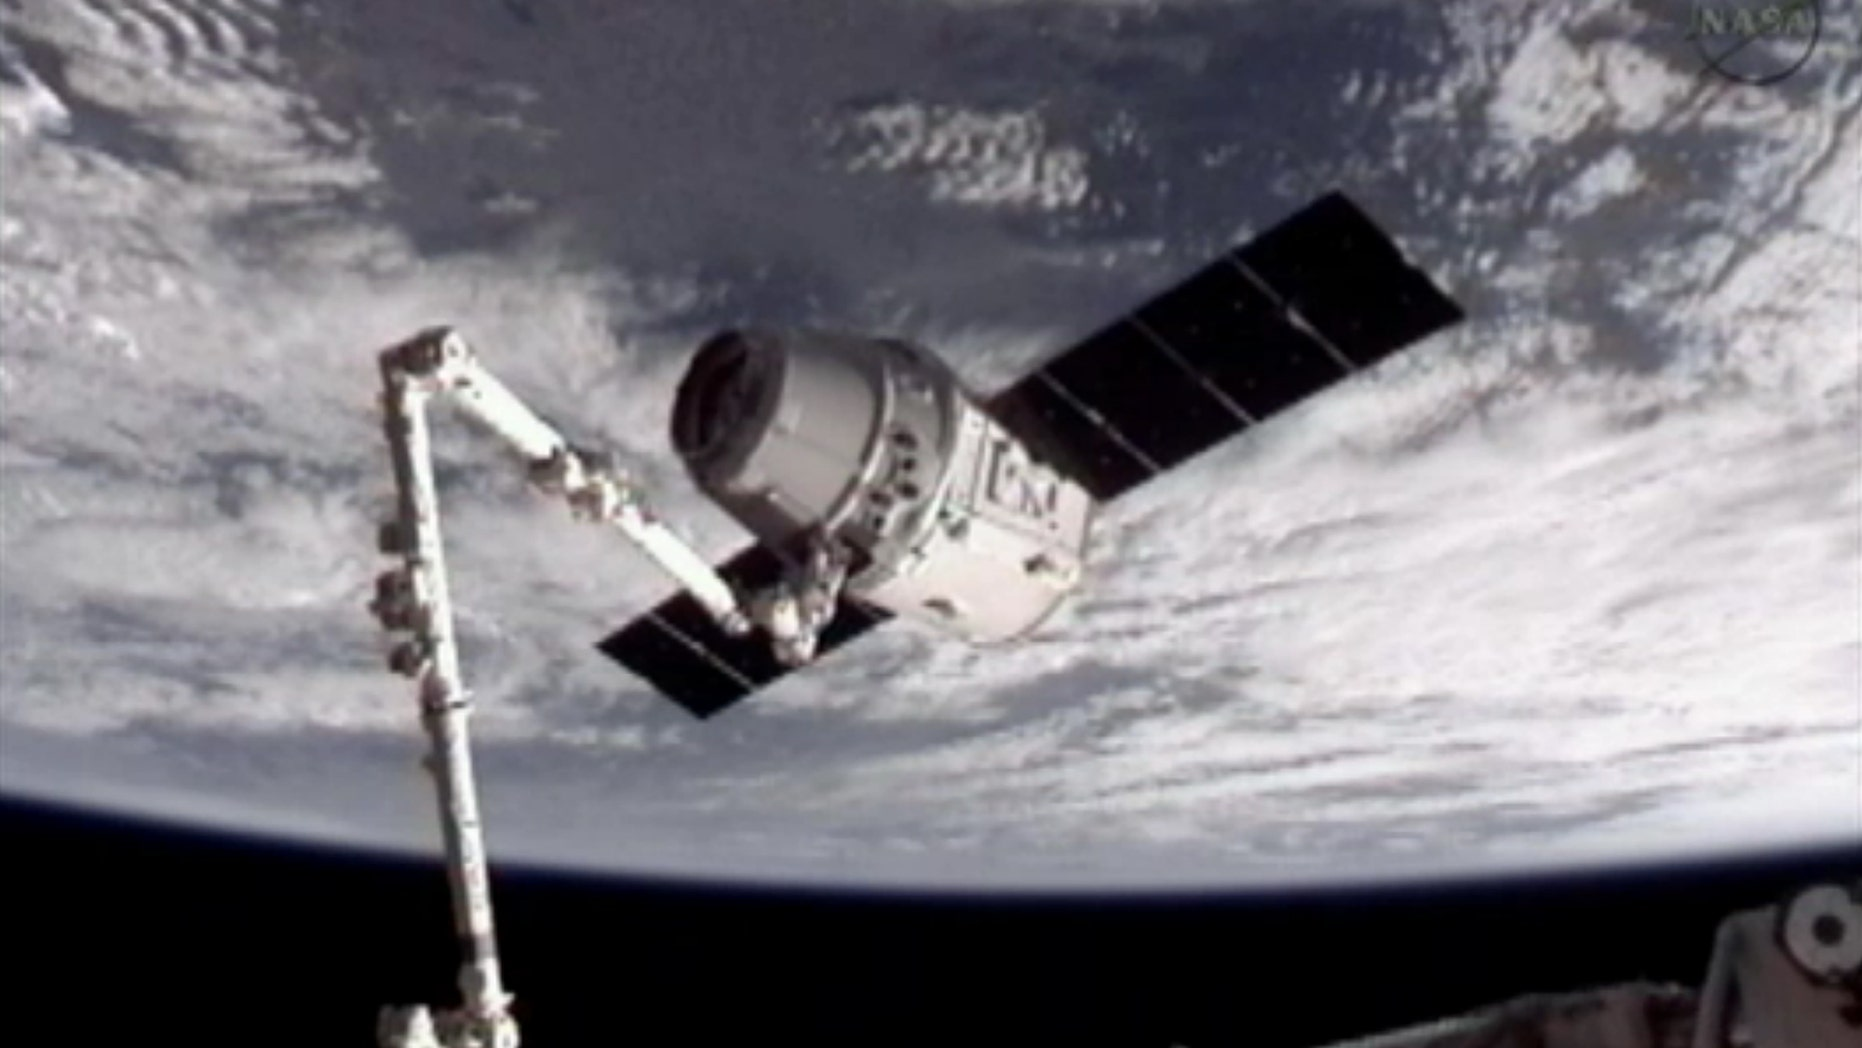 May 25, 2012: This image provided by NASA-TV shows the SpaceX Dragon commercial cargo craft, top, after Dragon was grappled by the Canadarm2 robotic arm and connected to the International Space Station.